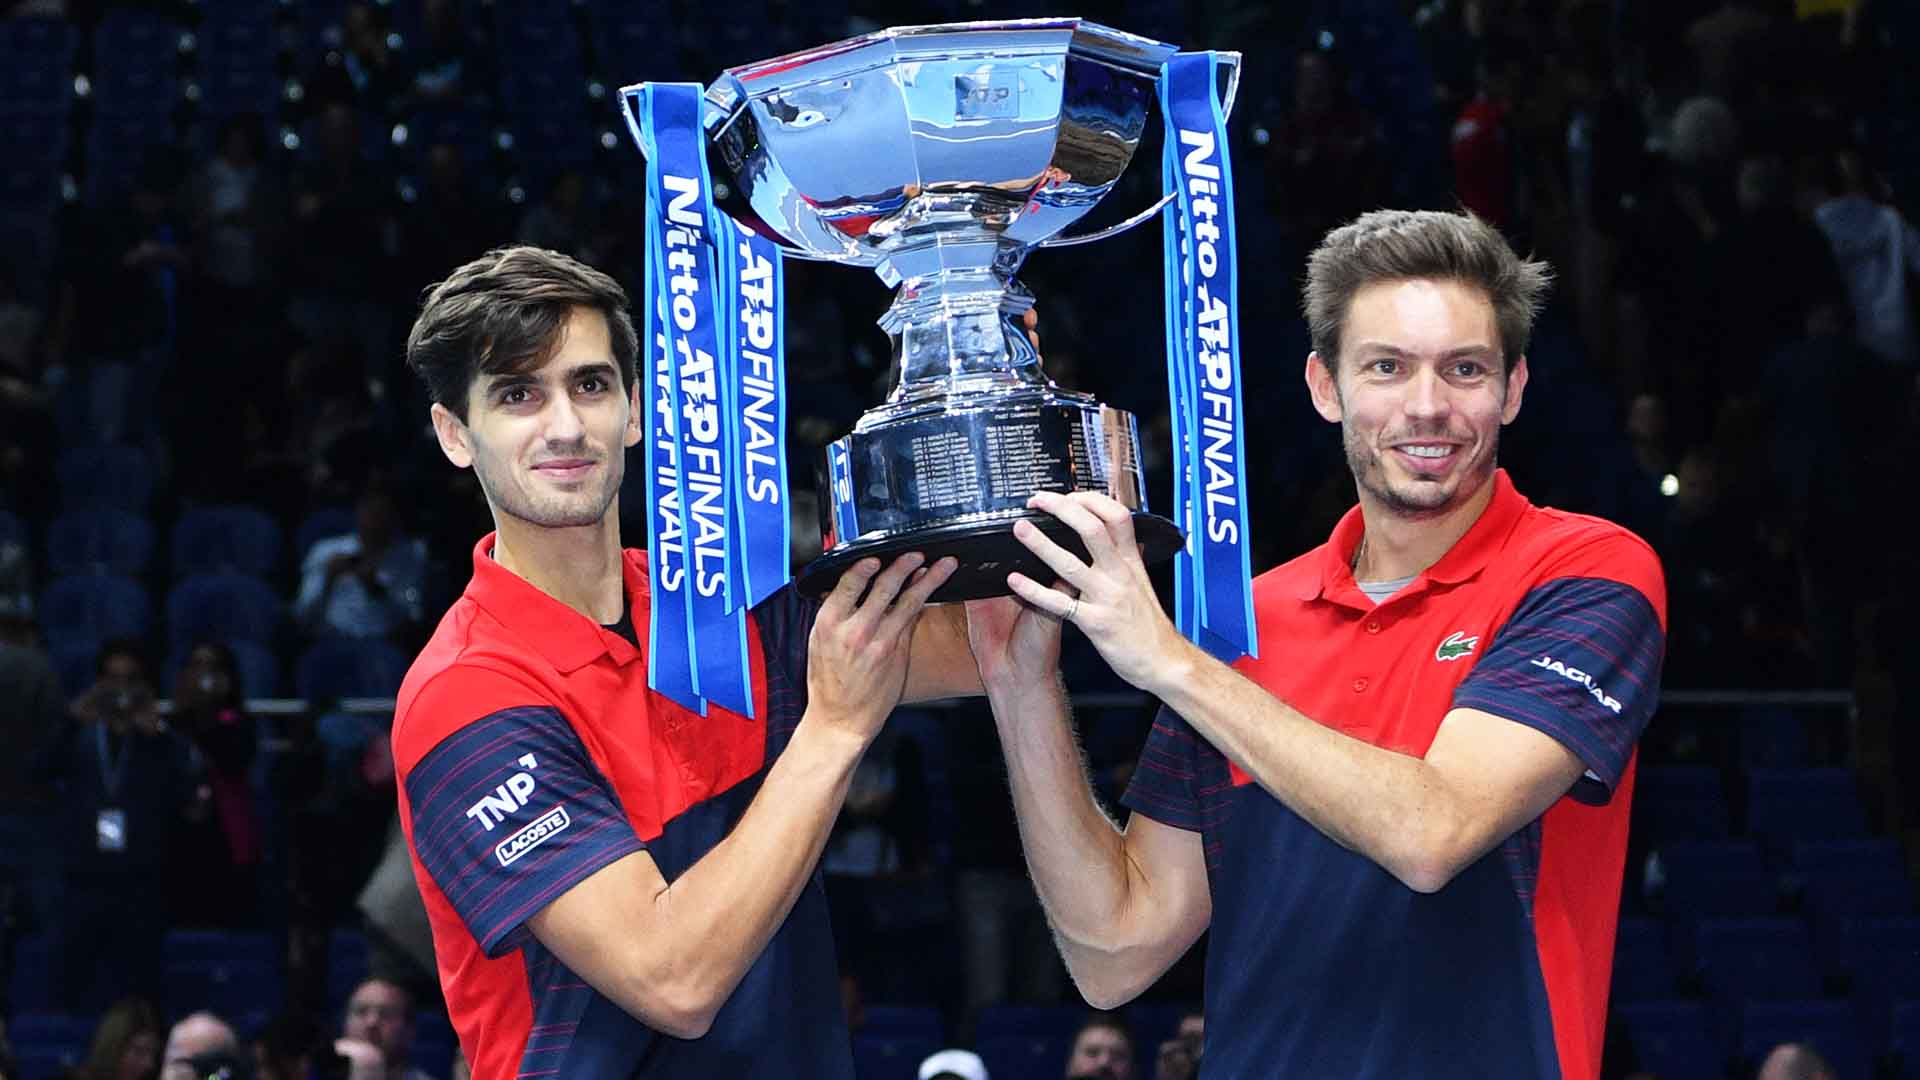 Pierre-Hugues Herbert and Nicolas Mahut claim their third team title of 2019.